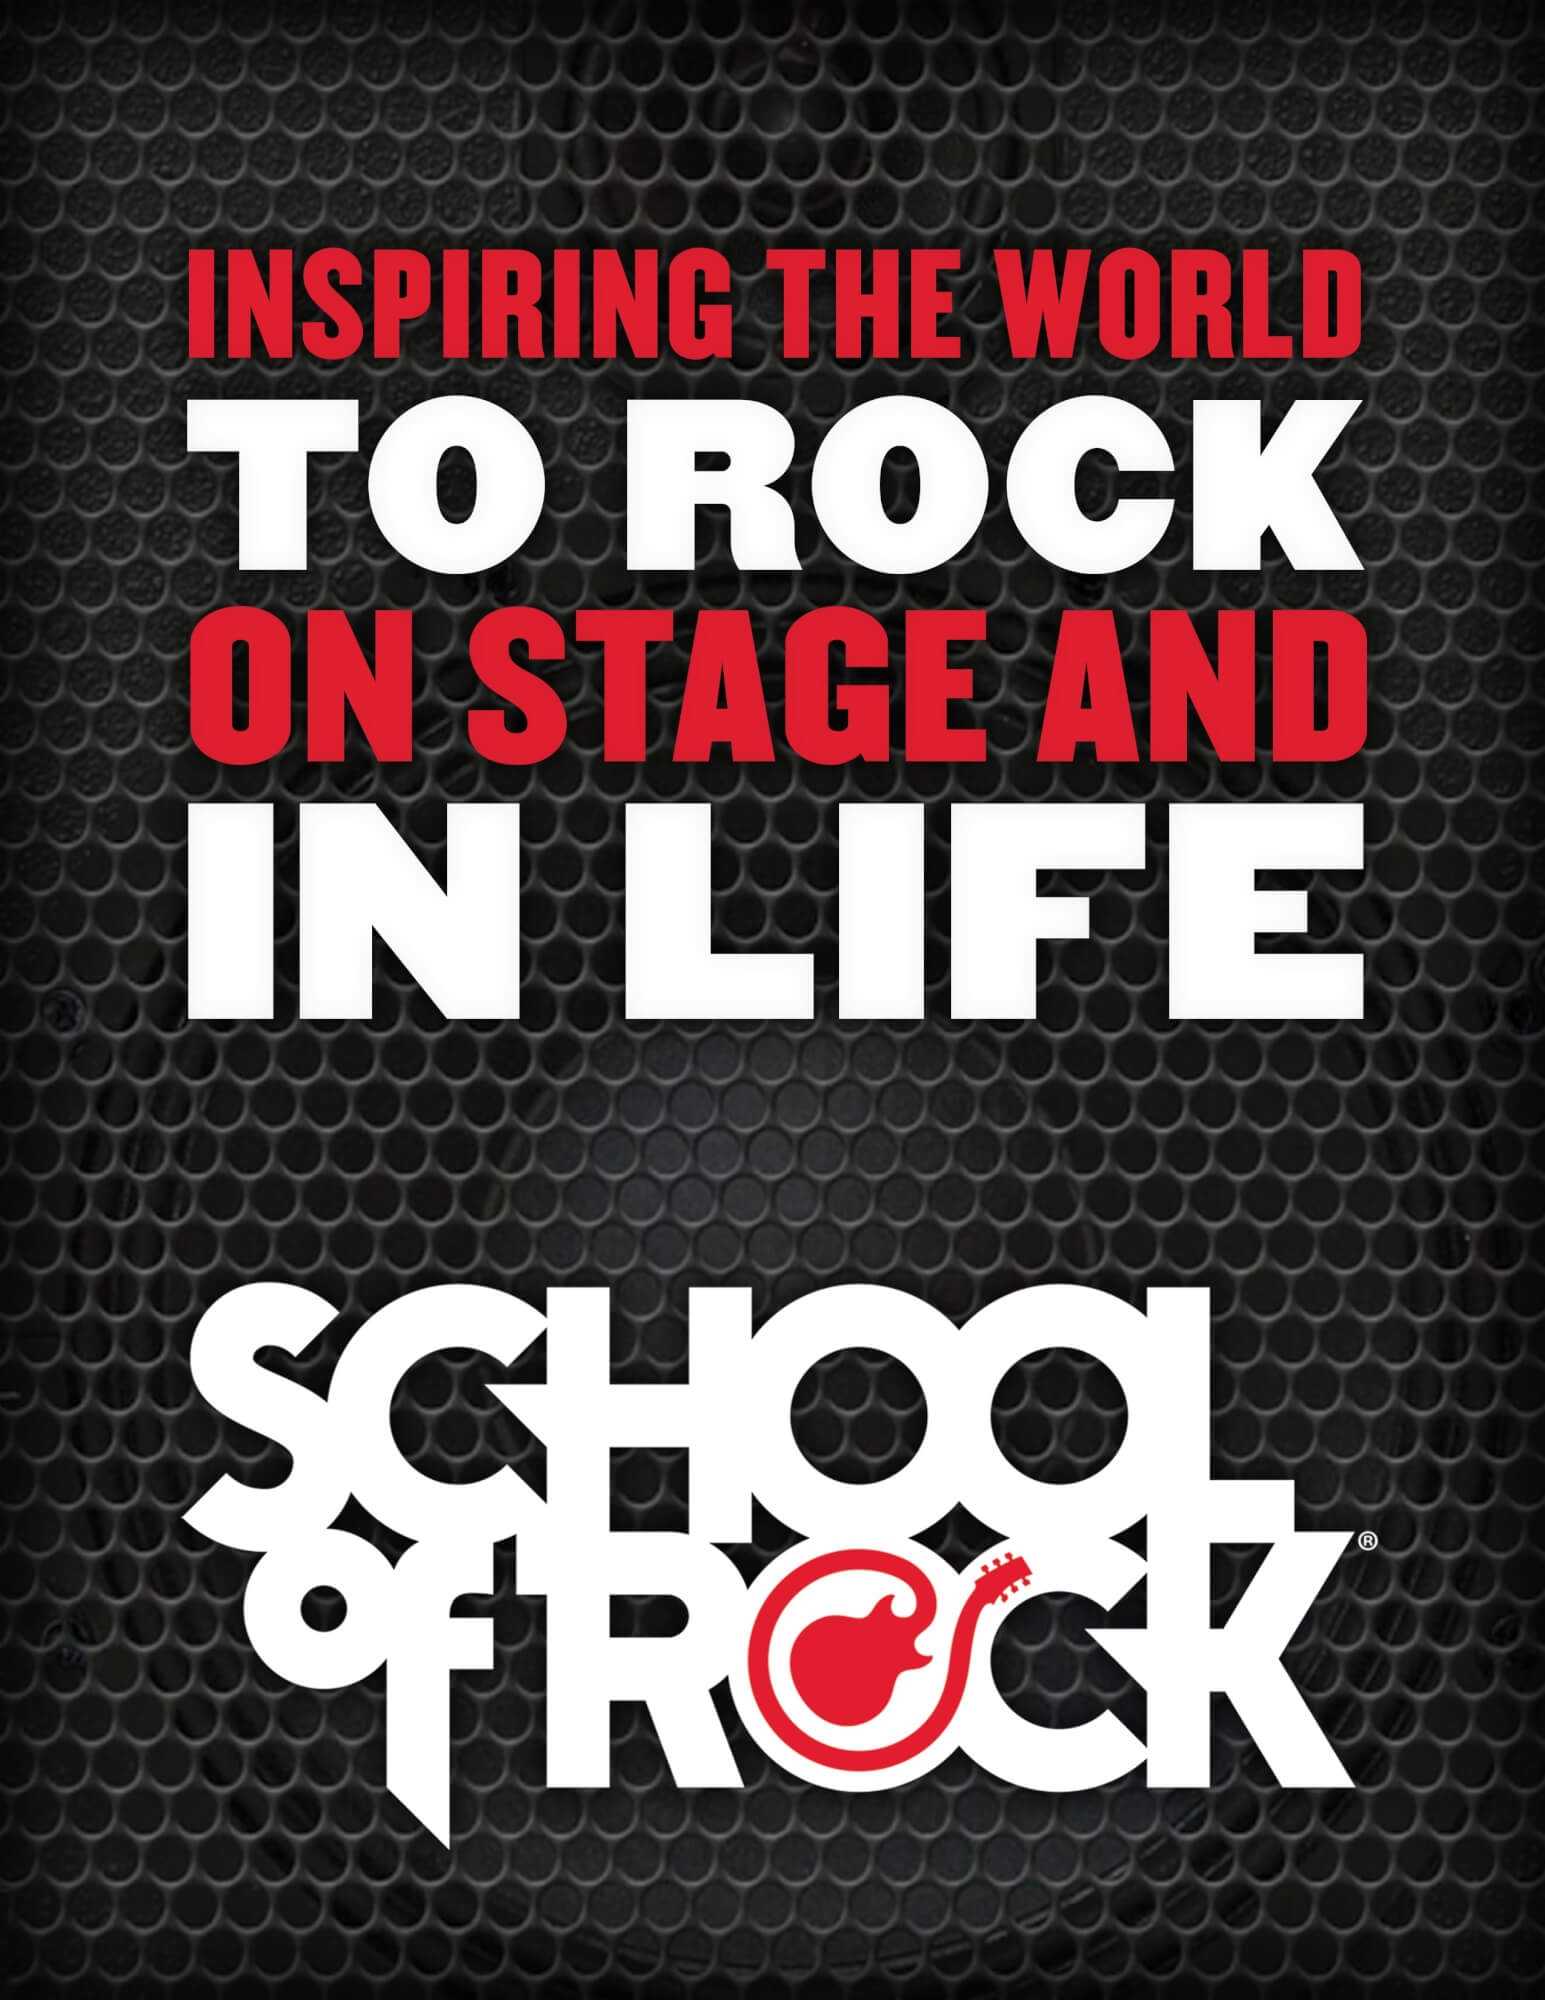 Inspiring the World to Rock on Stage and in Life!